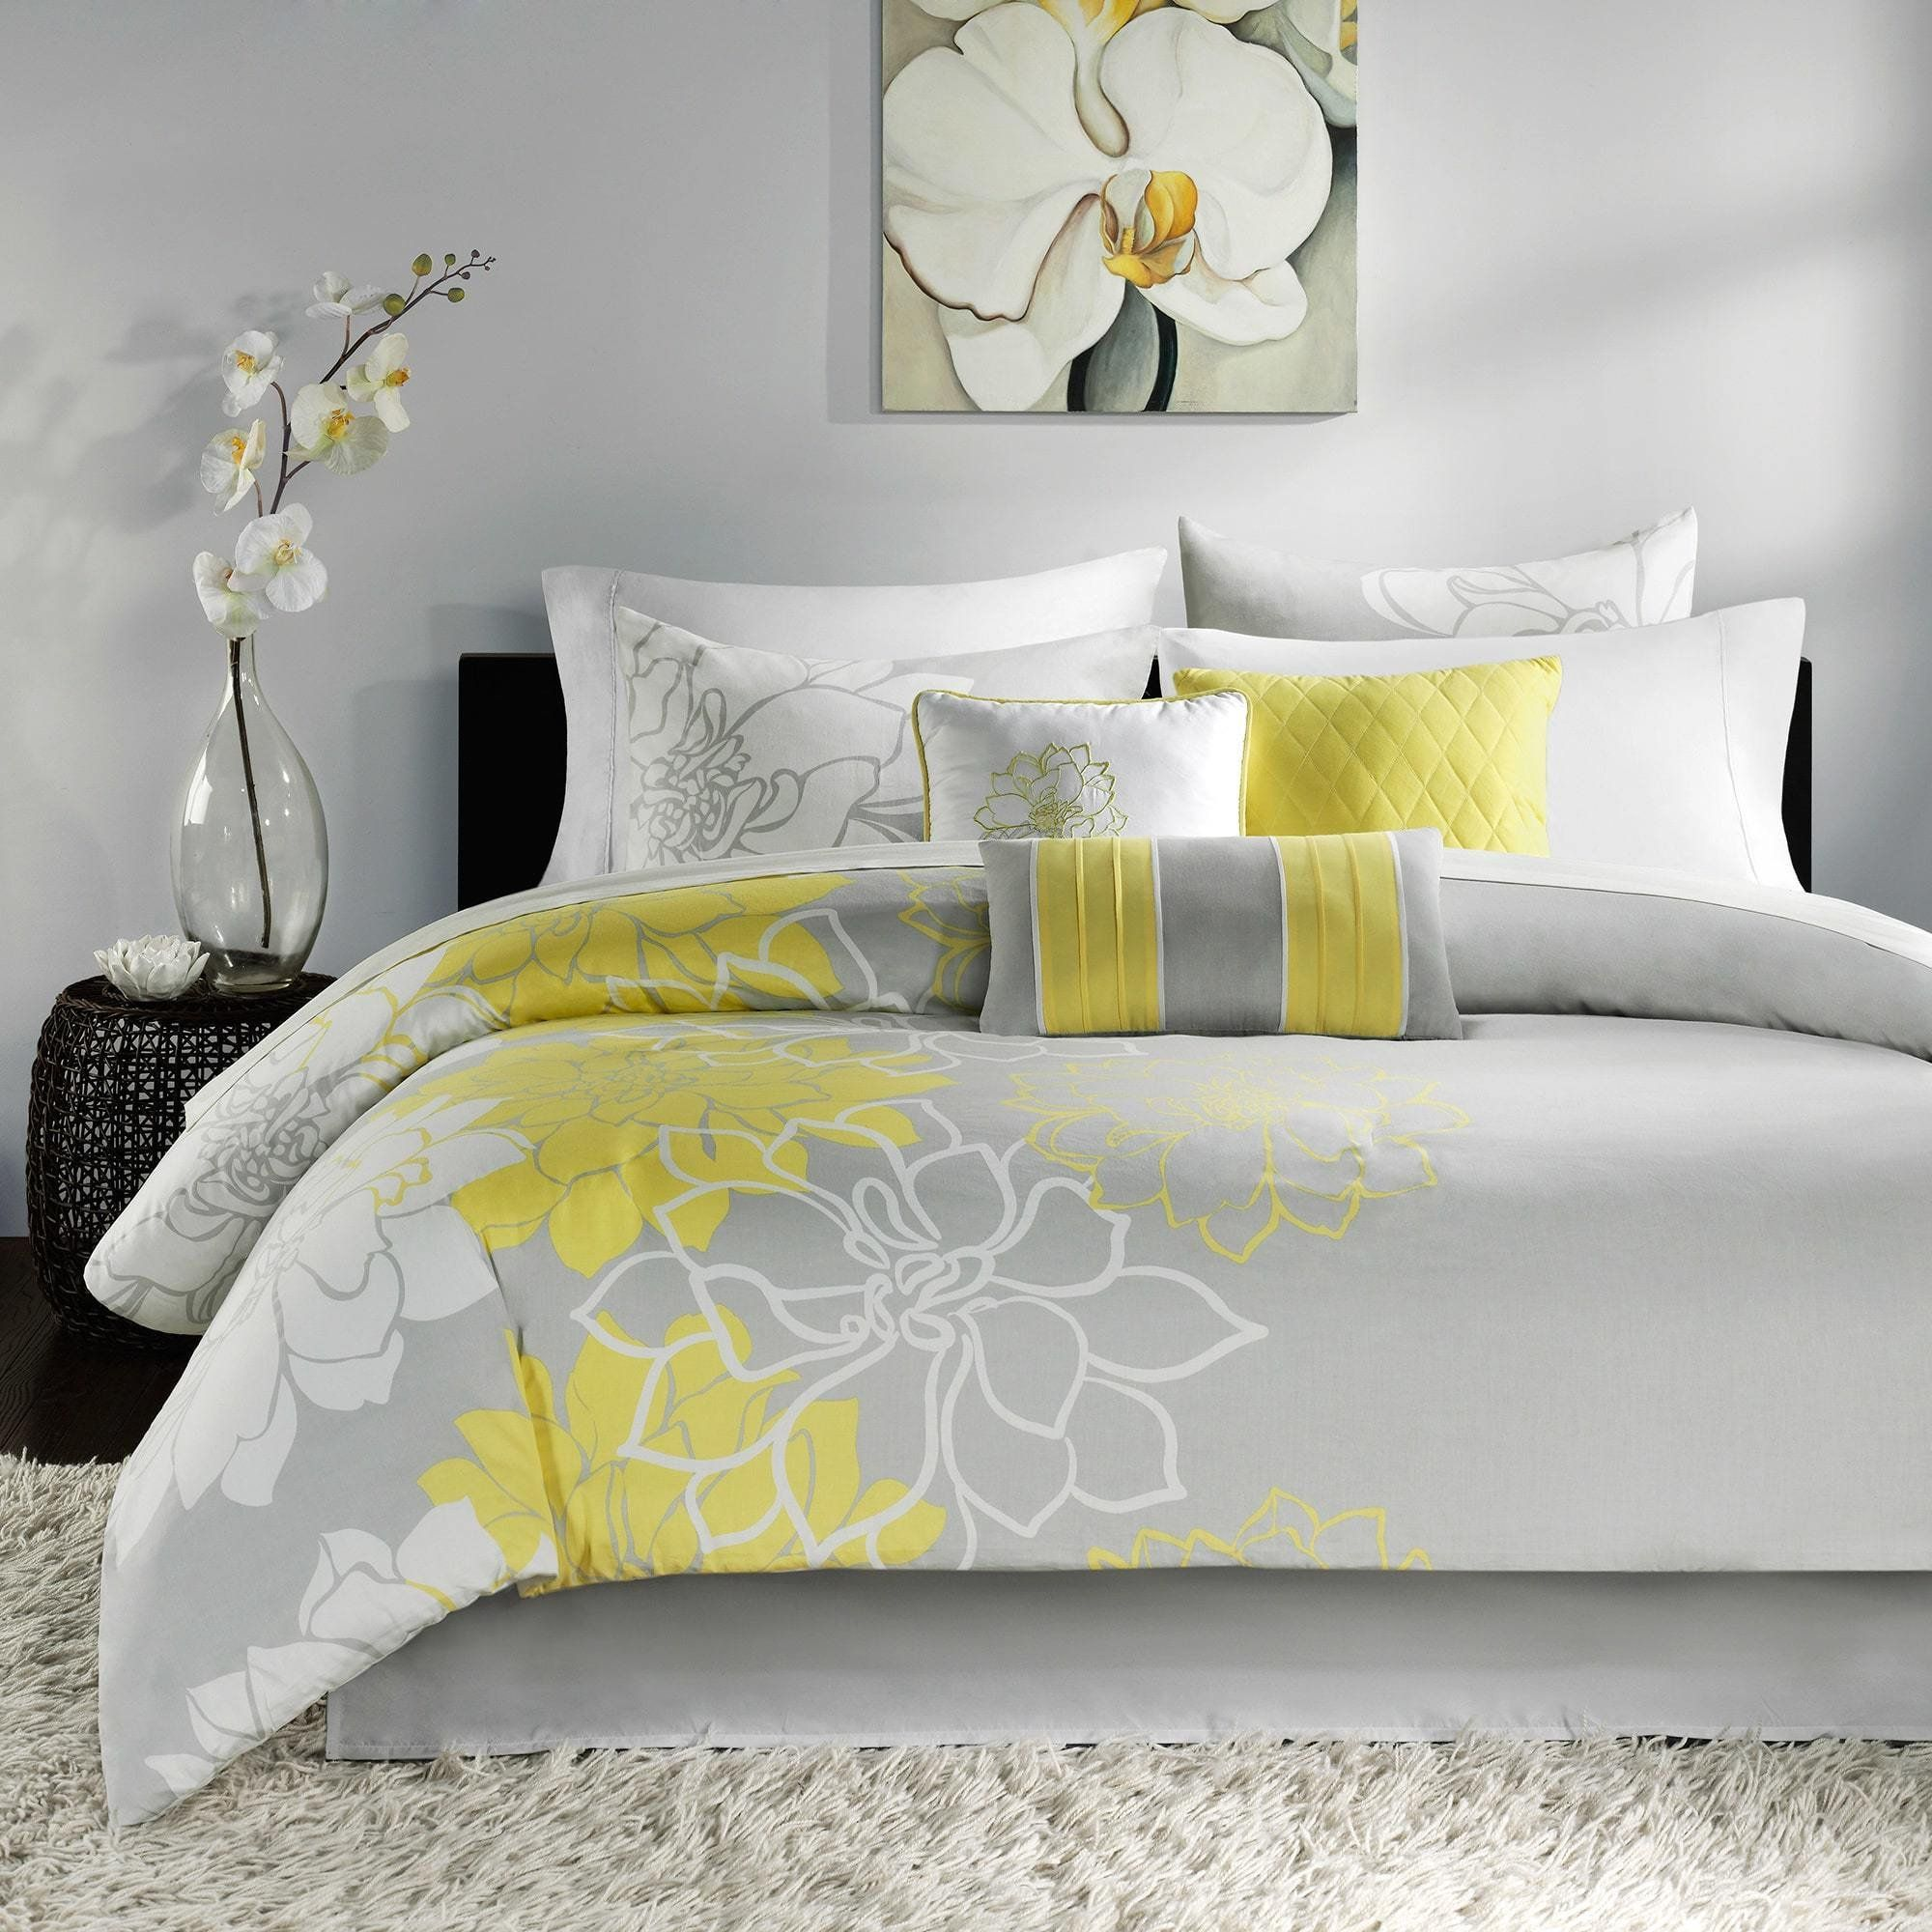 7 Piece Yellow Floral King Size Comforter SetBeautiful Grey